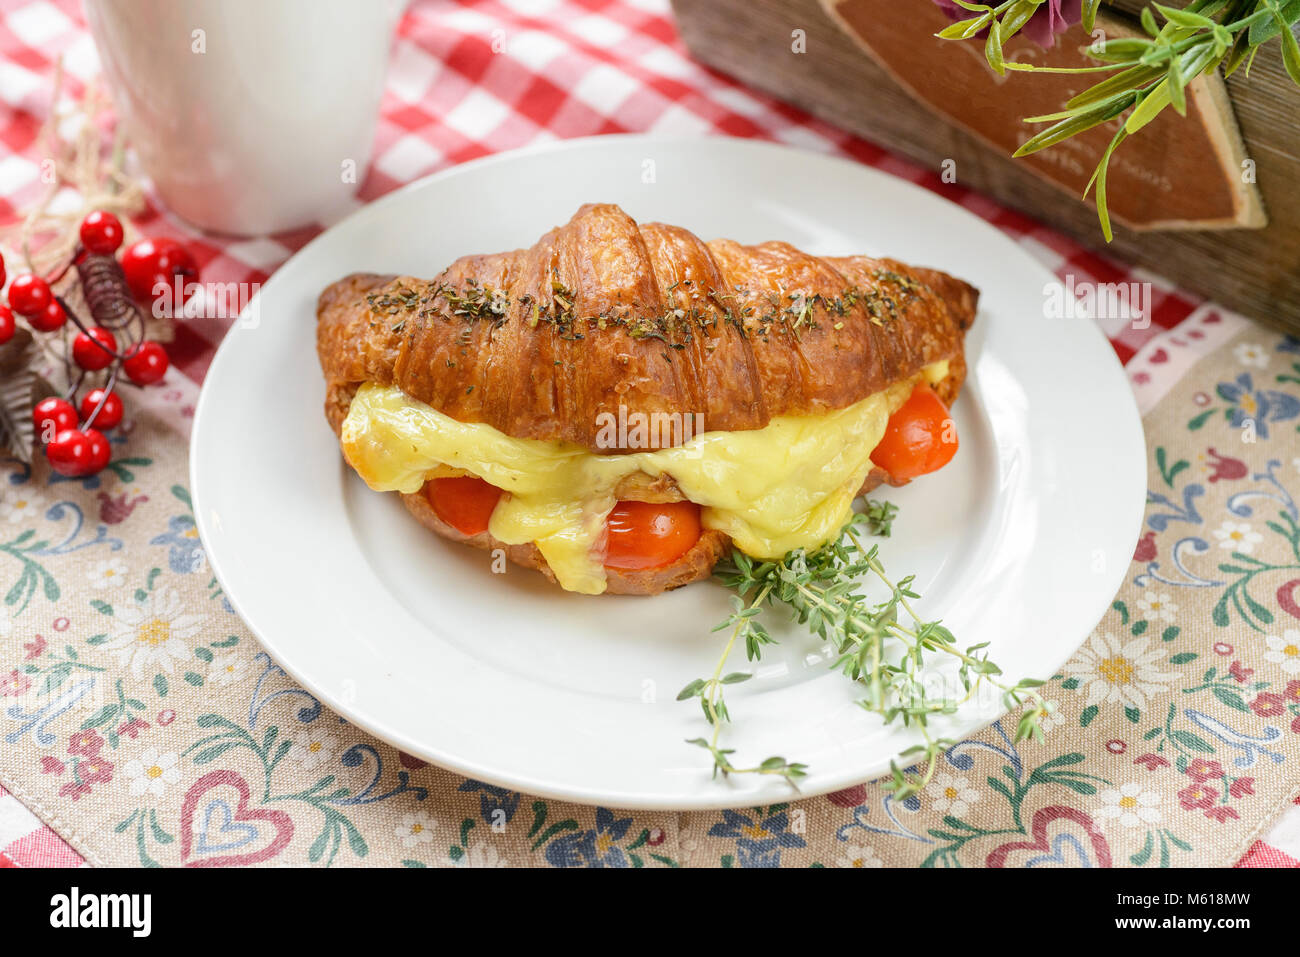 Croissant with Bacon and cheese - Stock Image